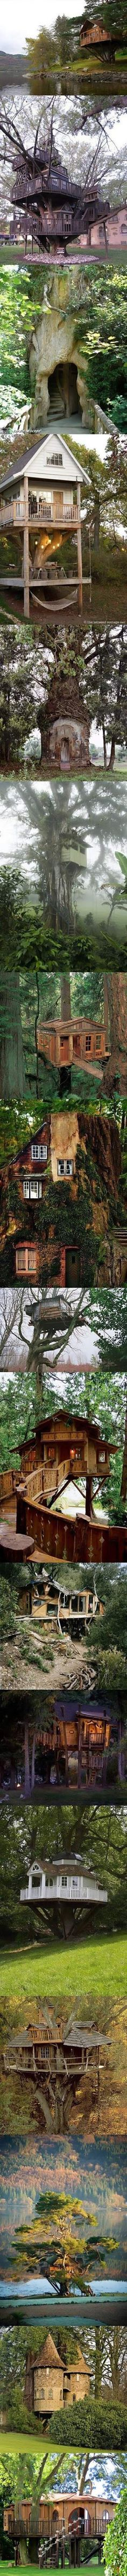 More amazing tree houses.